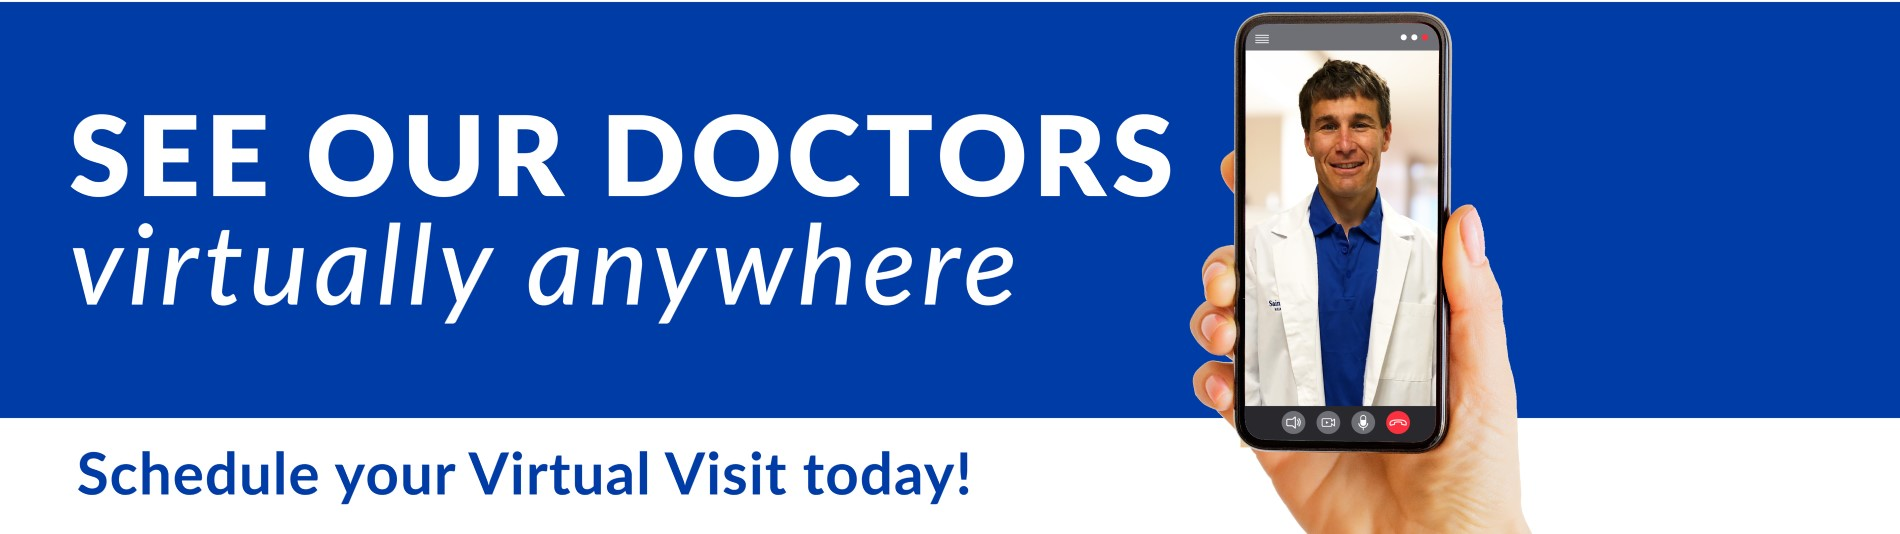 See our doctors, virtually anywhere. Schedule your virtual visit today!